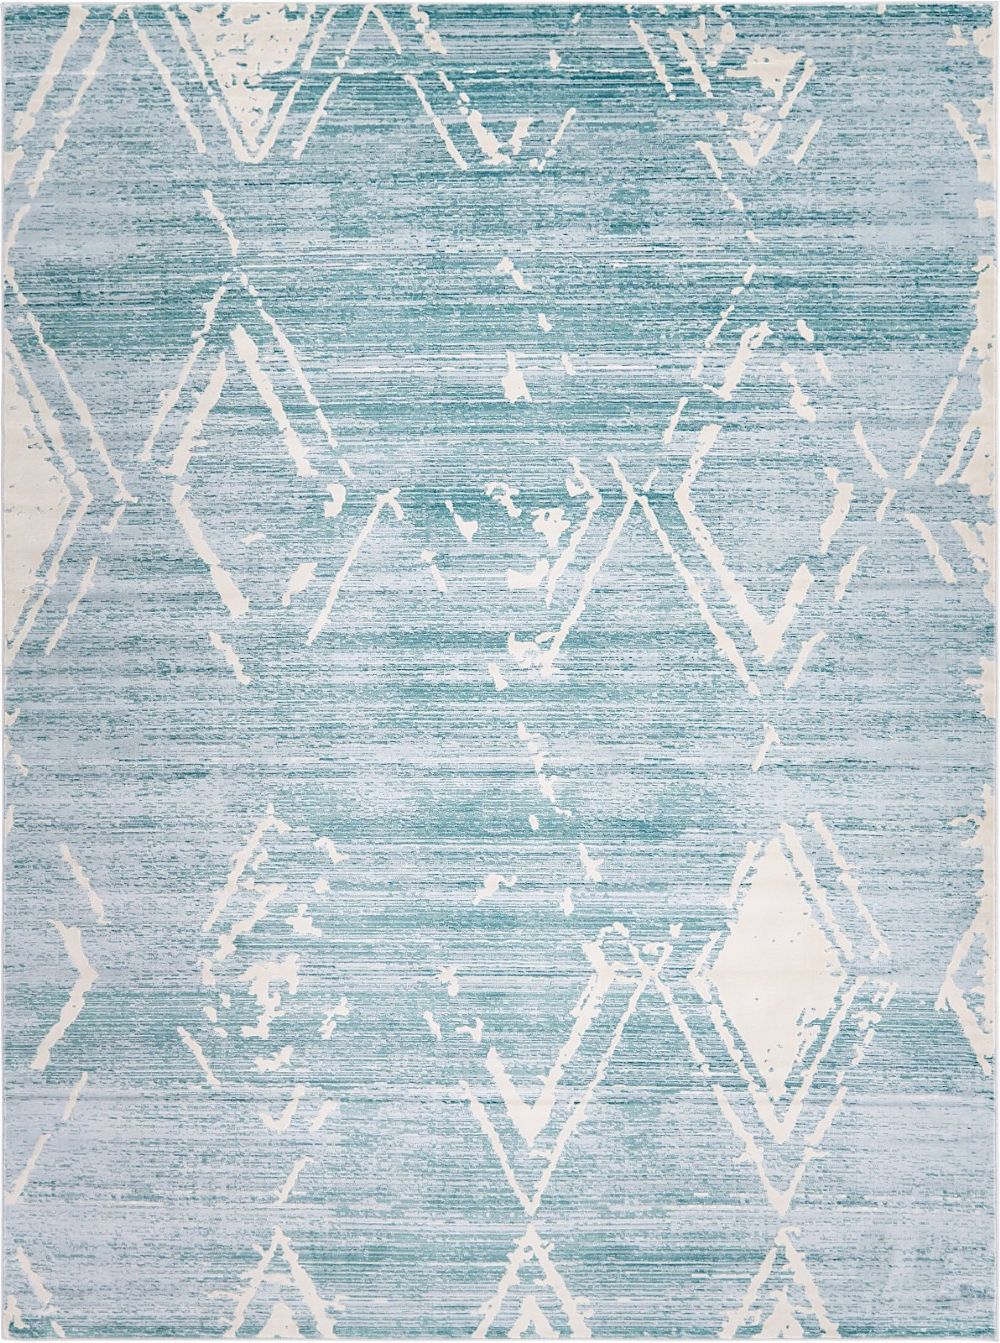 unique loom uptown  by jill zarin contemporary area rug collection